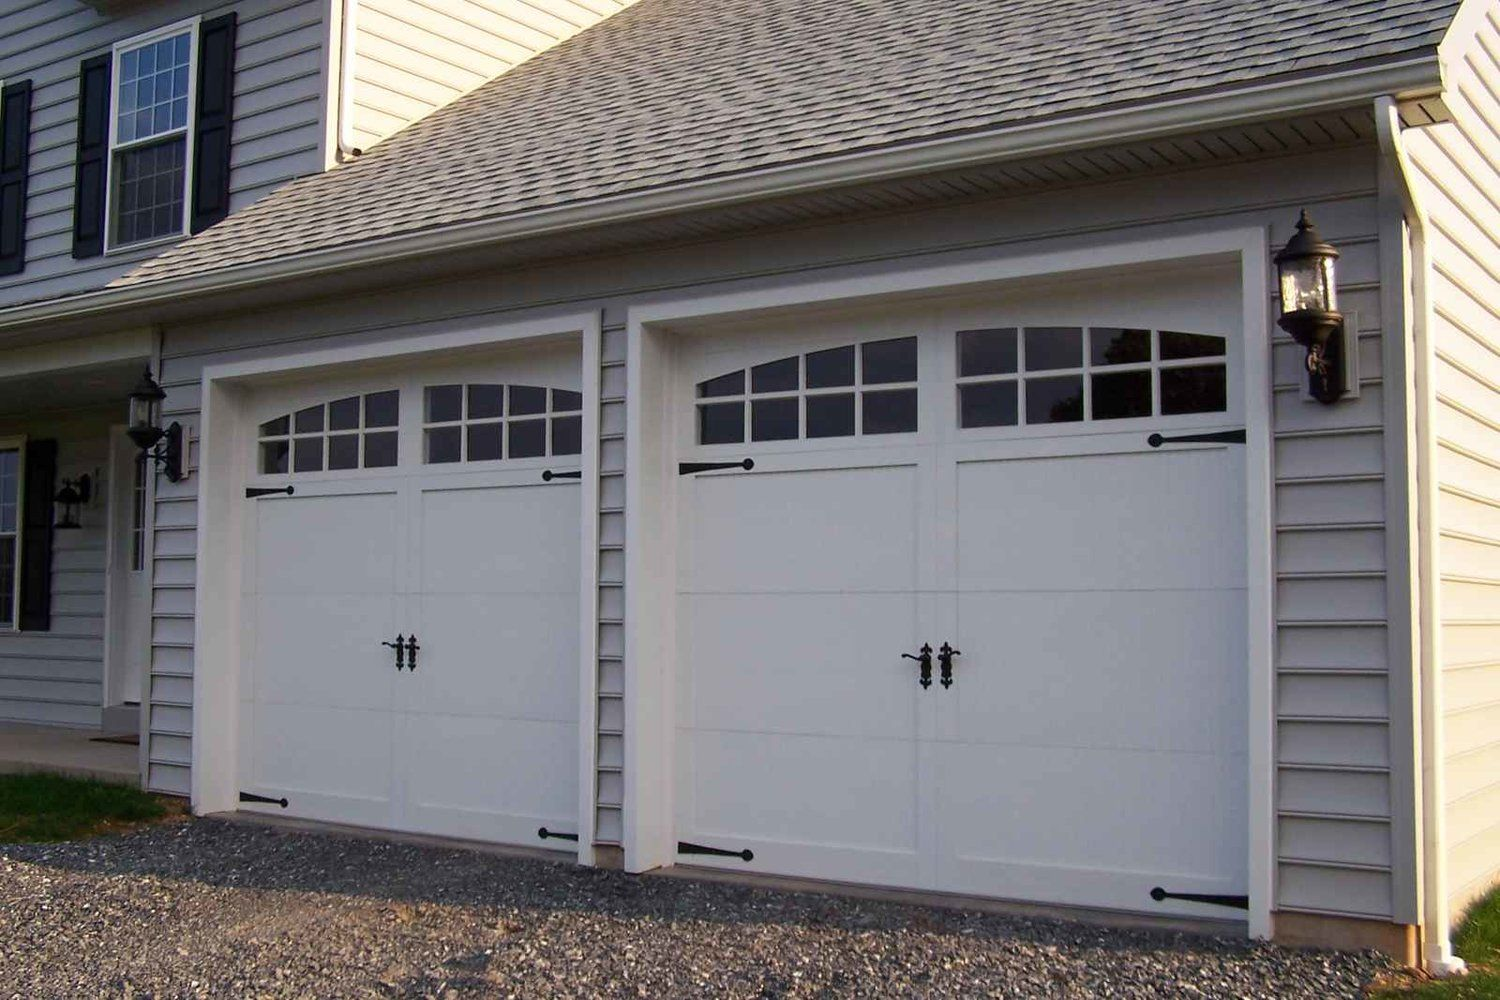 Add Some Pizazz To Your Garage Door With Windows And Decorative Handles Call Champion Garage Doo Garage Doors Garage Door Windows White Garage Doors